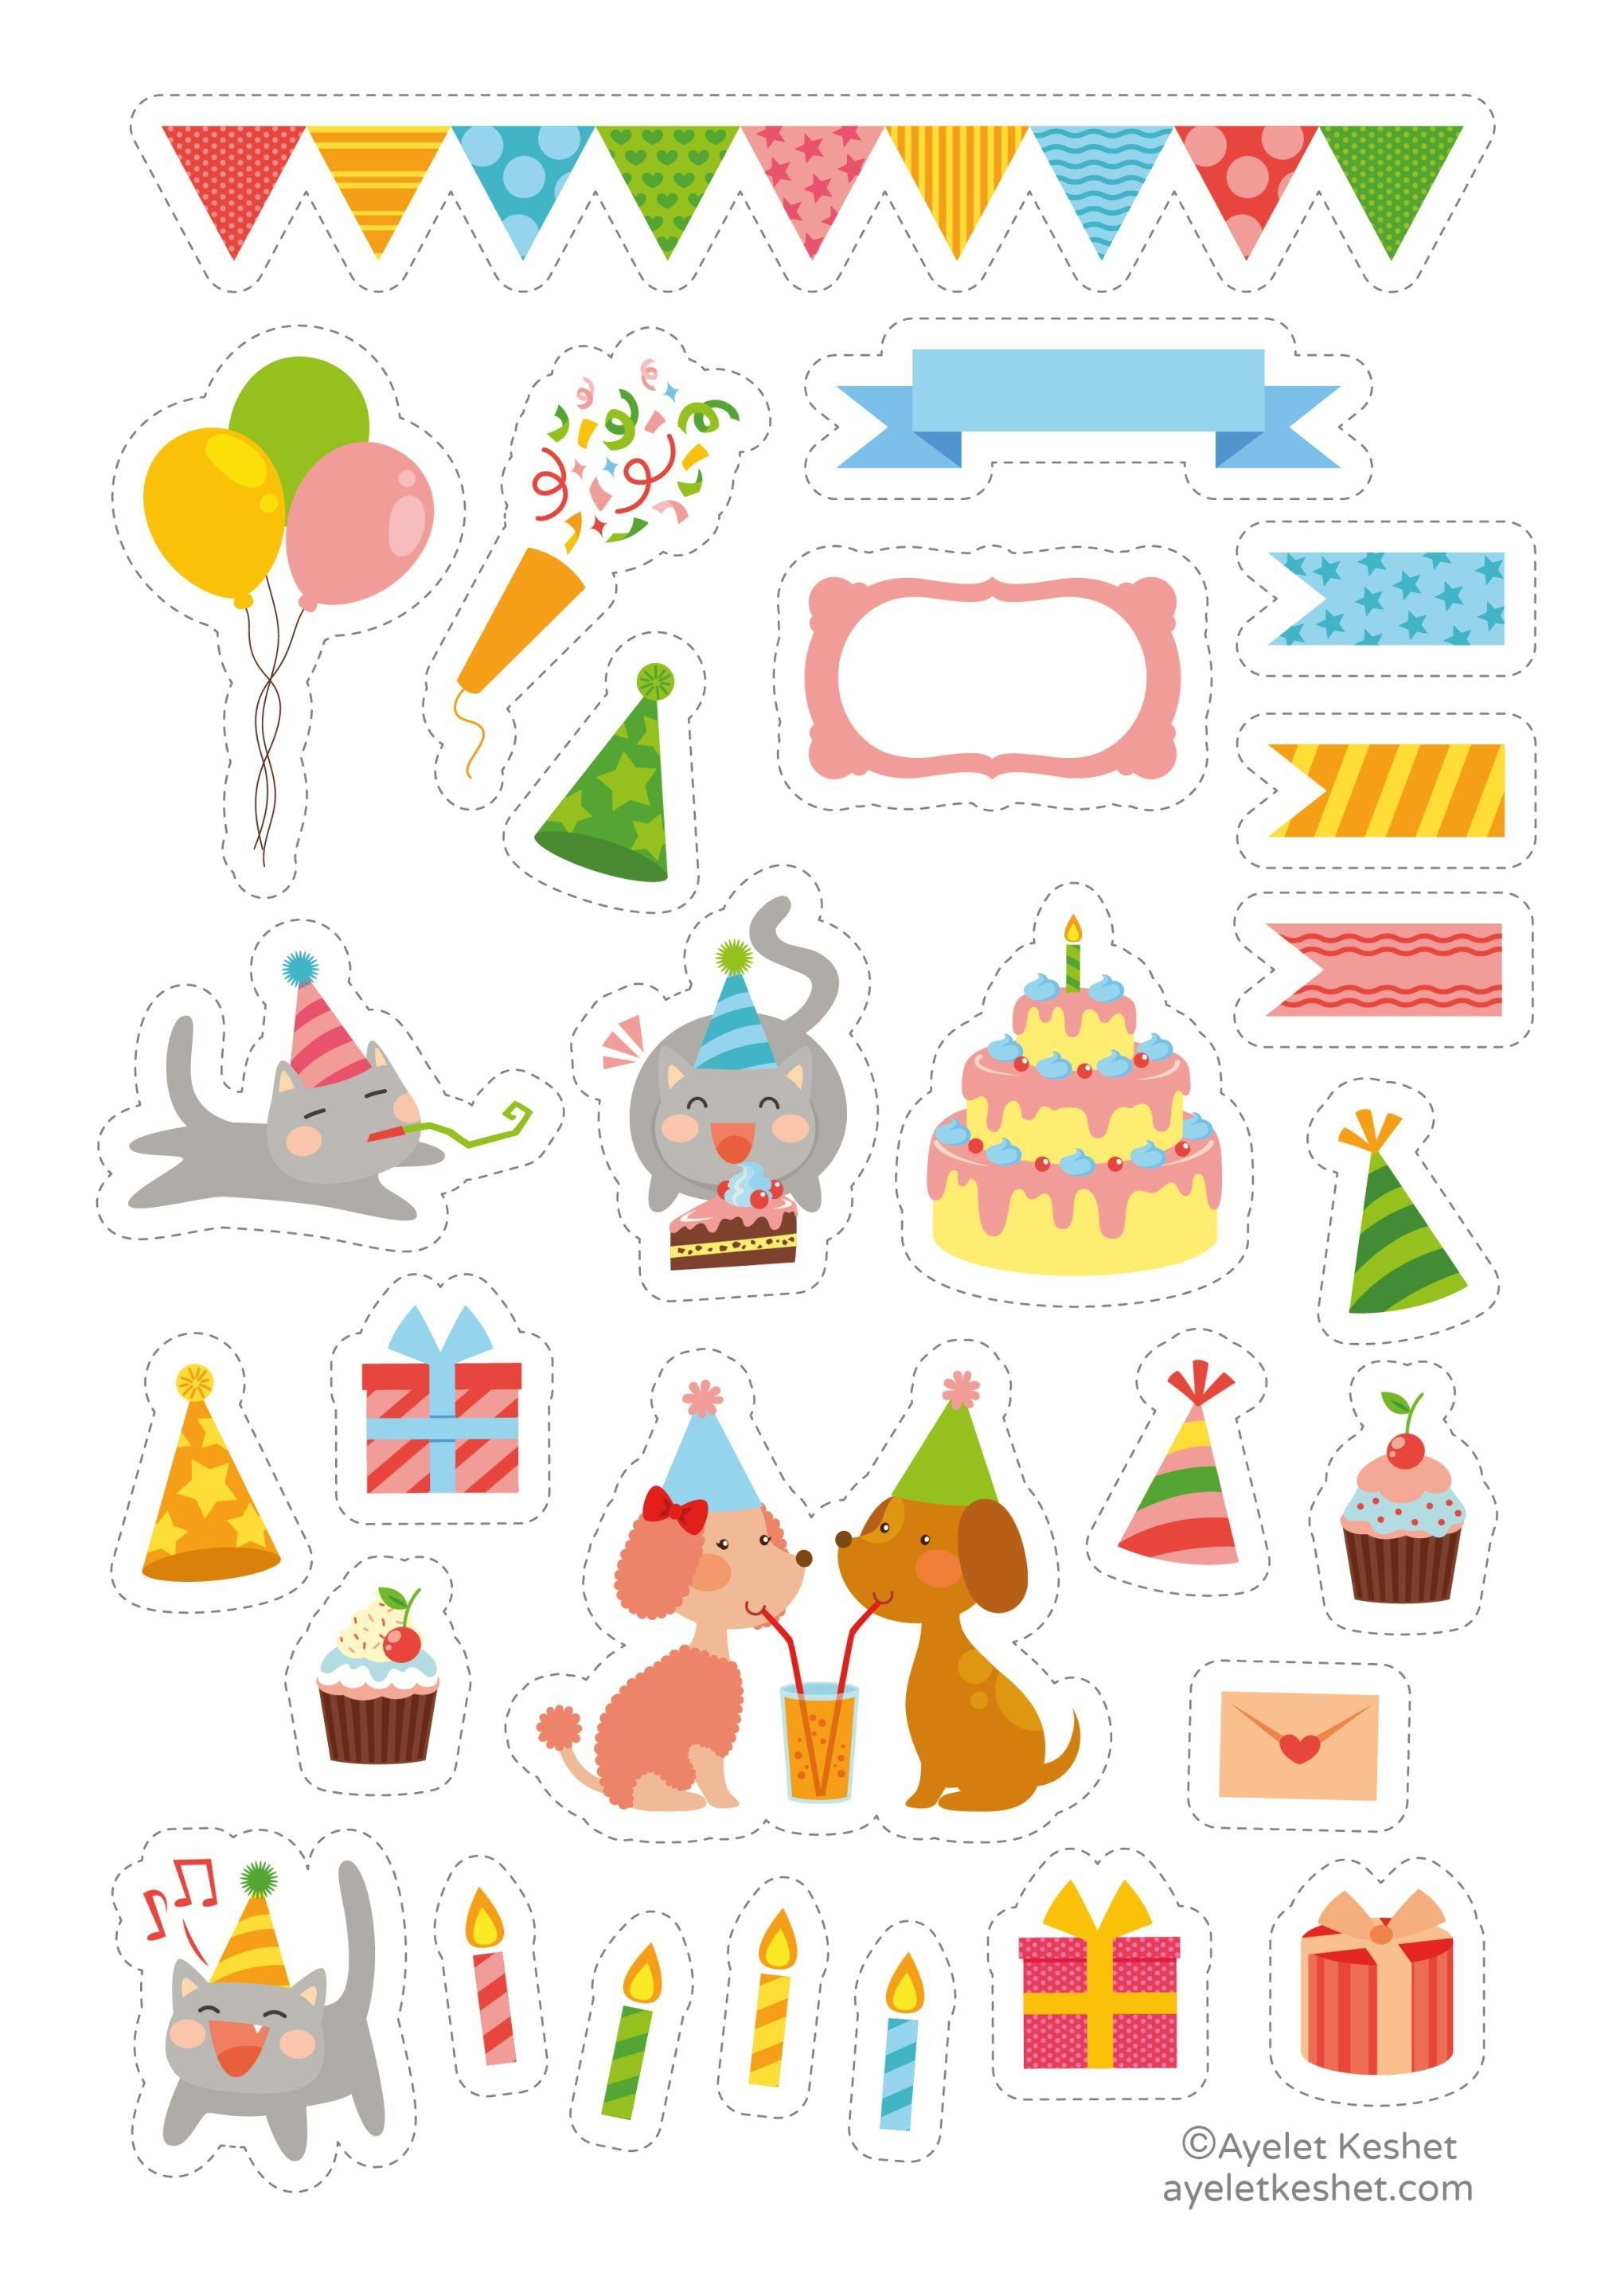 Free cute printable stickers for birthday. Print the high